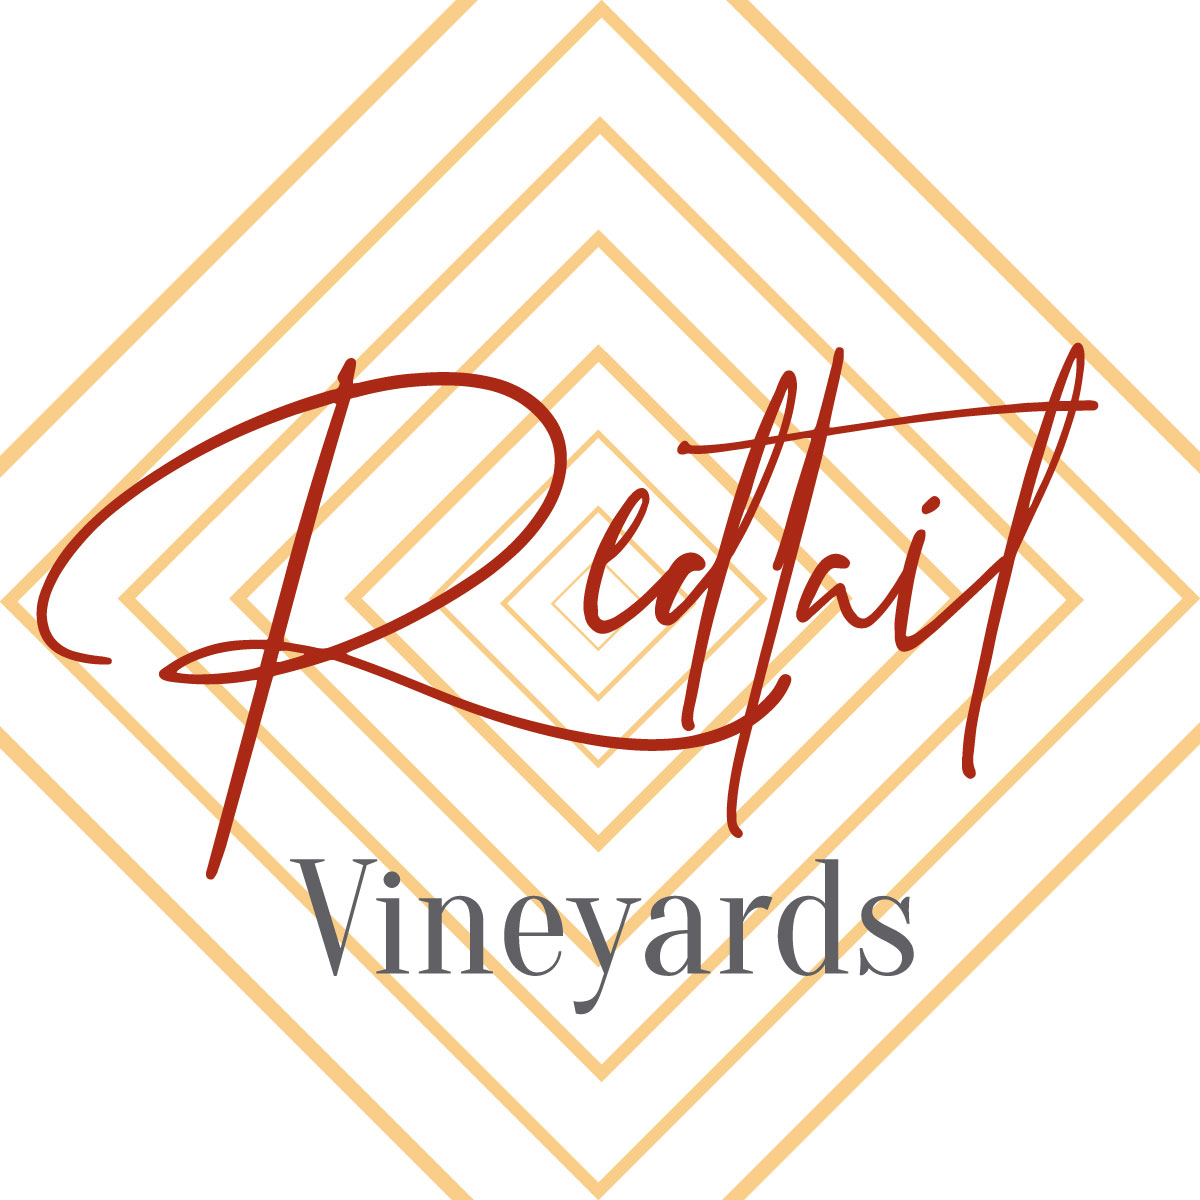 Welcome to Redtail Vineyards! - We're a small, off-grid winery in beautiful Prince Edward County Ontario, a burgeoning wine region two hours east of Toronto. Our wines are hand-made, vibrant, and terroir driven, with no artificial yeasts or flavourings.Built on decades of friendship, family, and a passion for wine, our vibrant team wants to share our passion with you. Come join us in the County for a tasting of our latest releases of Pinot Gris, Riesling, Chardonnay and Pinot Noir. We hope you'll like them and we know you'll want to stay.